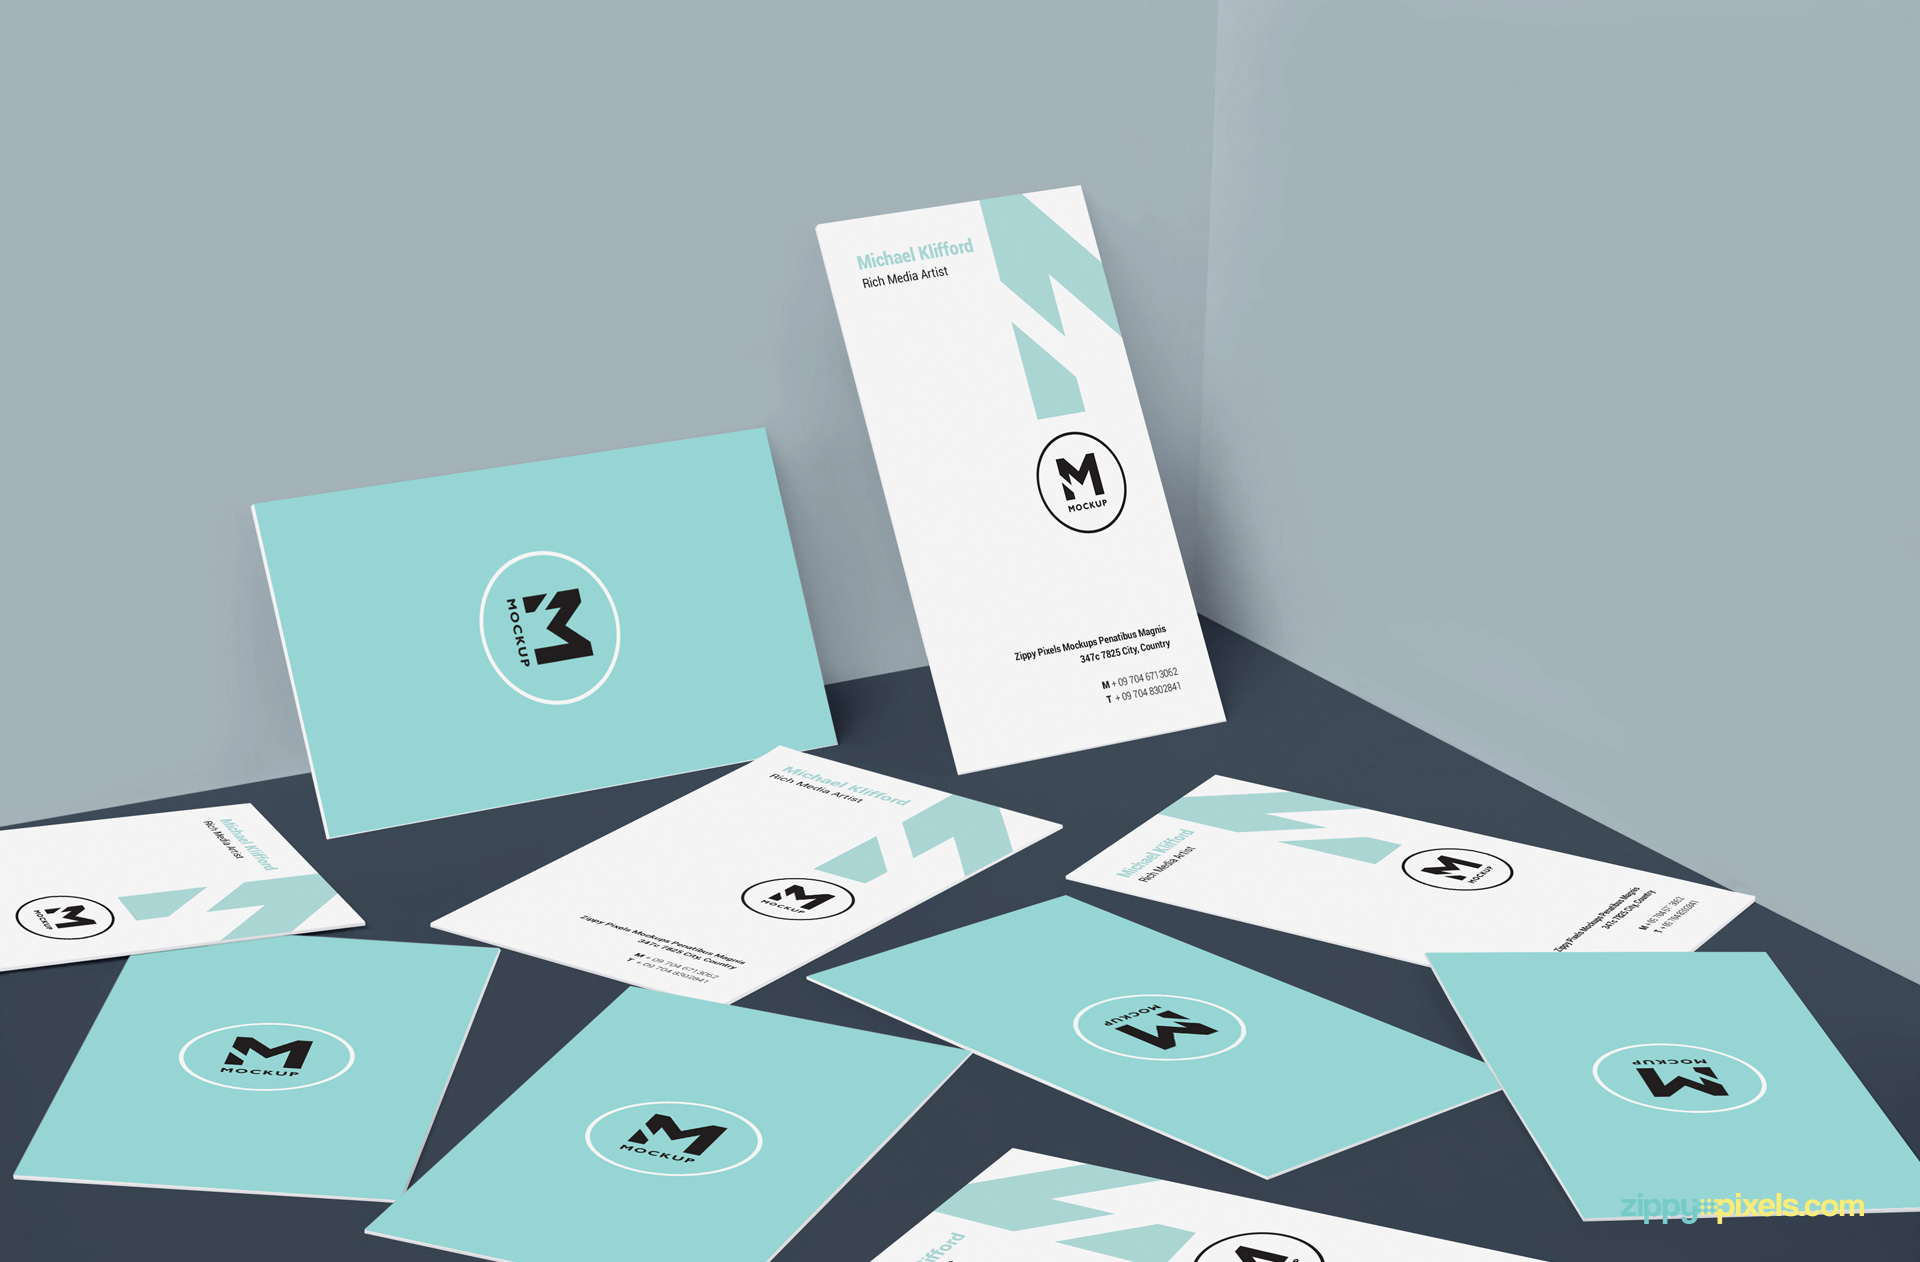 Free business card design mockup zippypixels smart object based free business card design mockup magicingreecefo Gallery